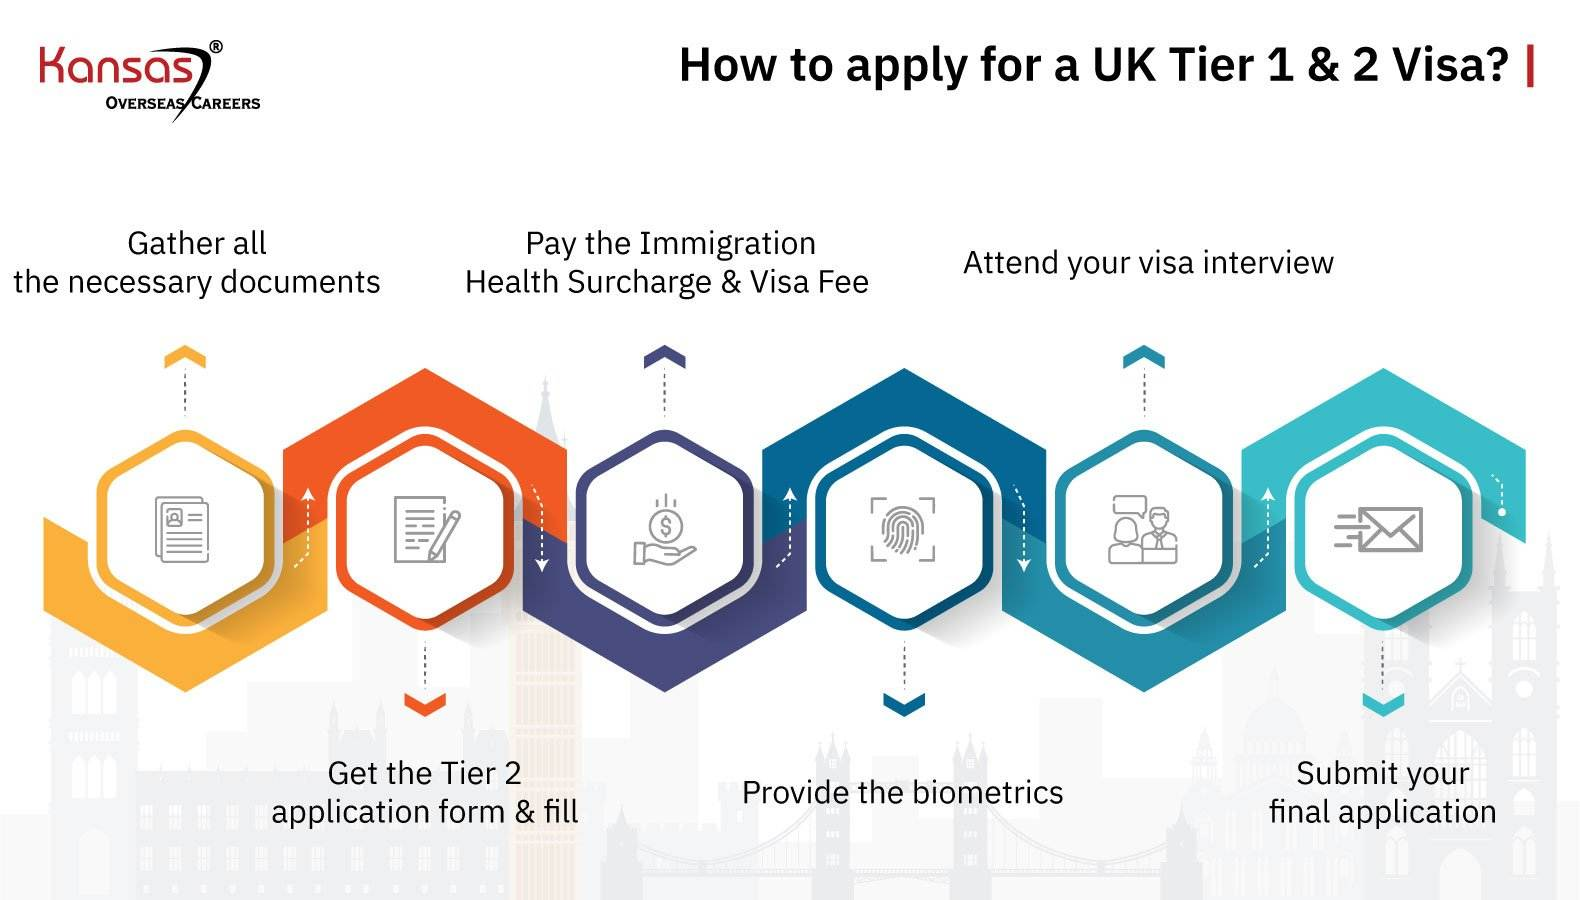 How-to-apply-for-a-UK-Tier1-&-2-Visa-